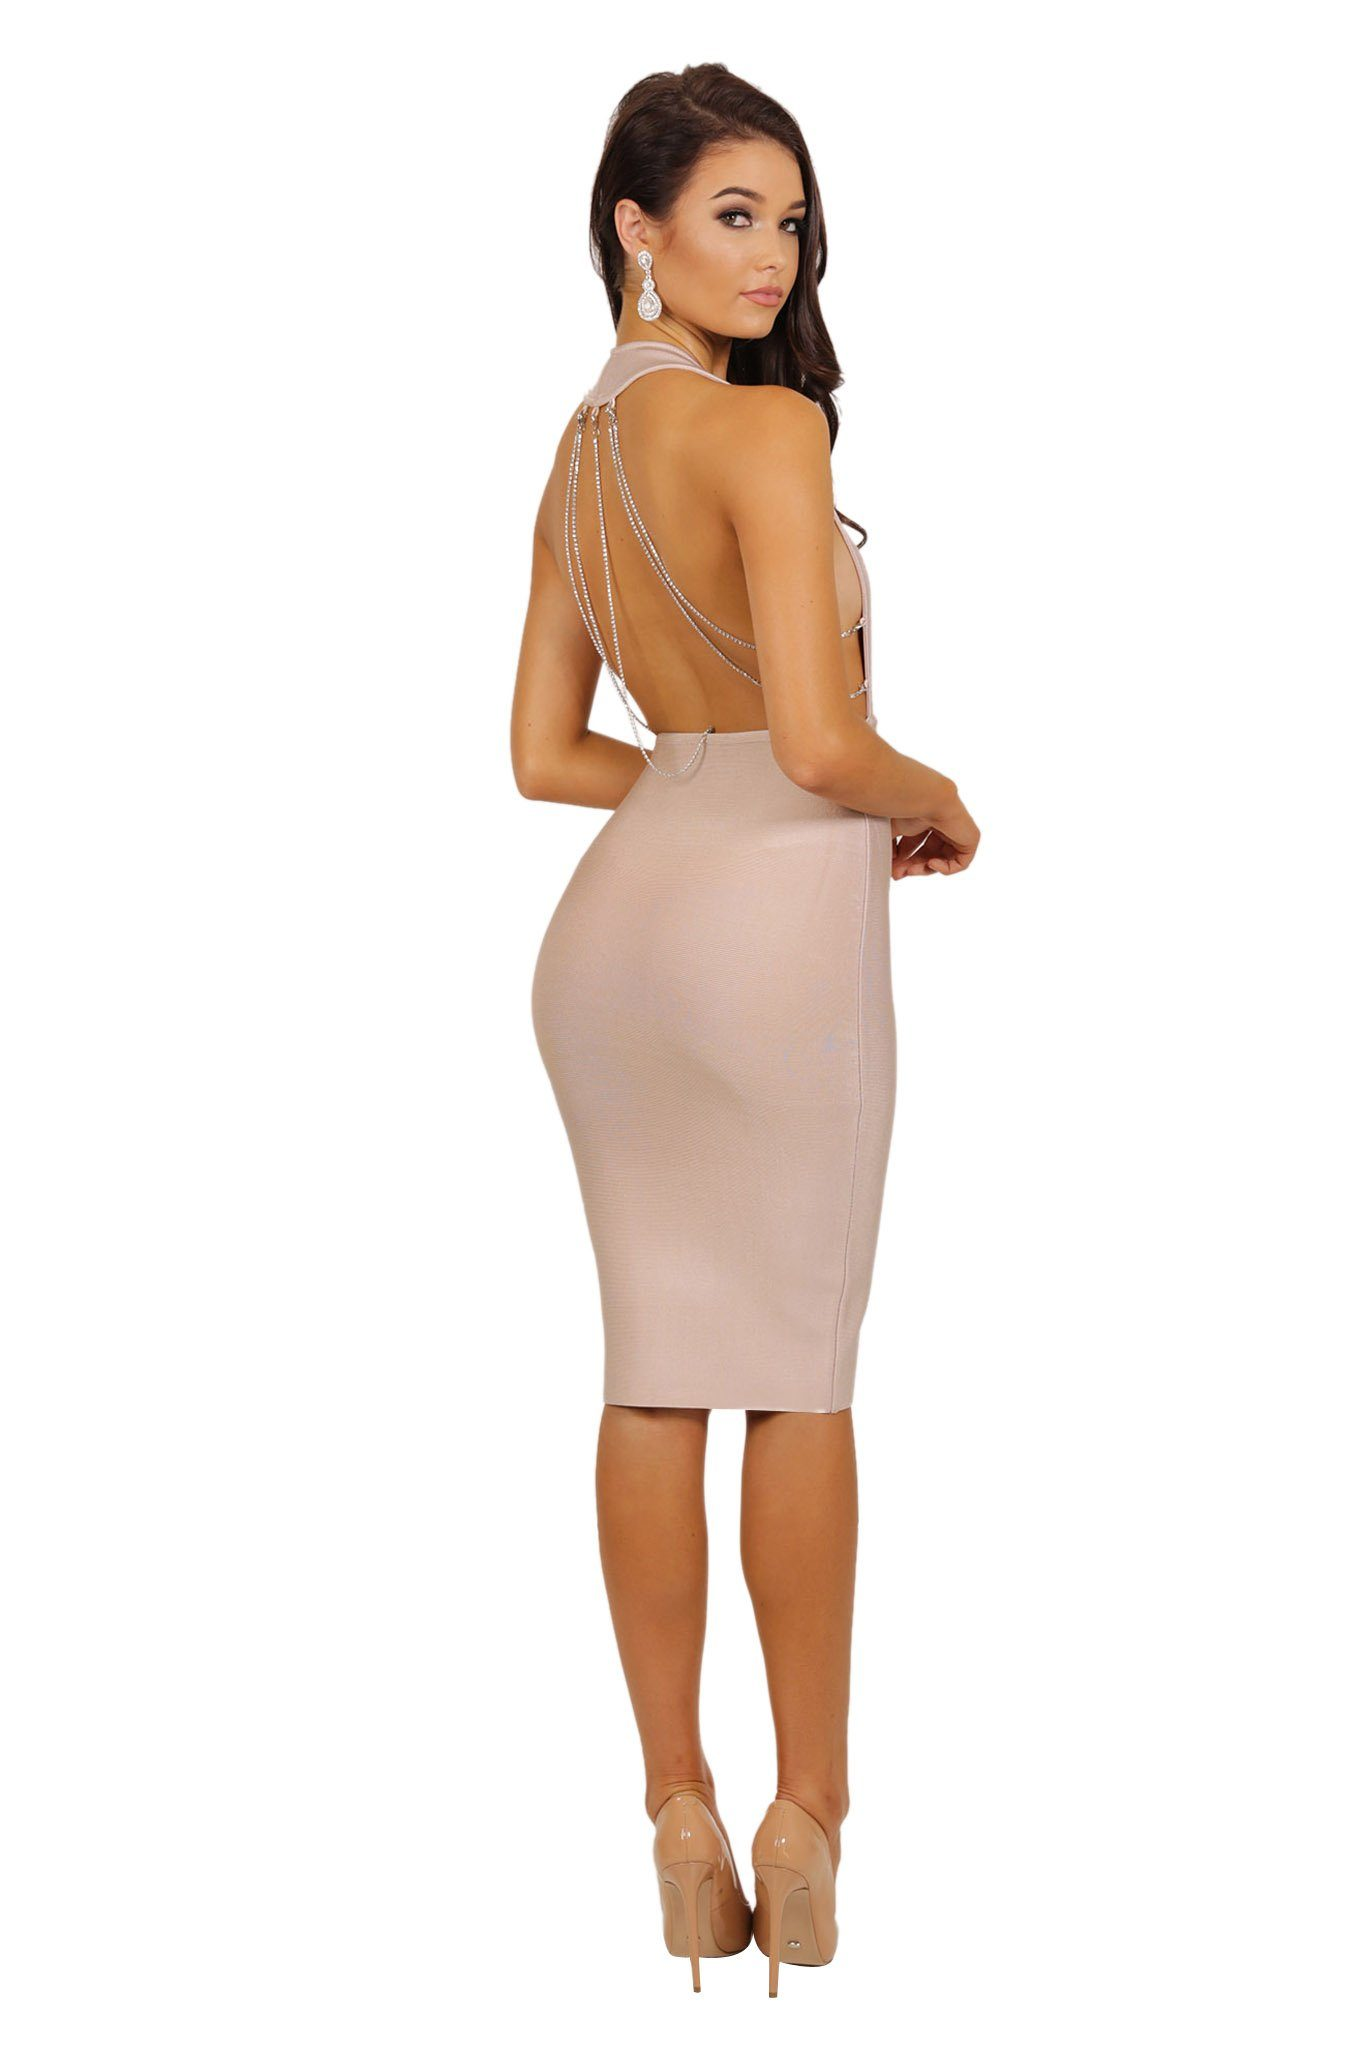 Nude colored knee length bandage dress sleeveless plunging neckline with dangling crystal chains at the back